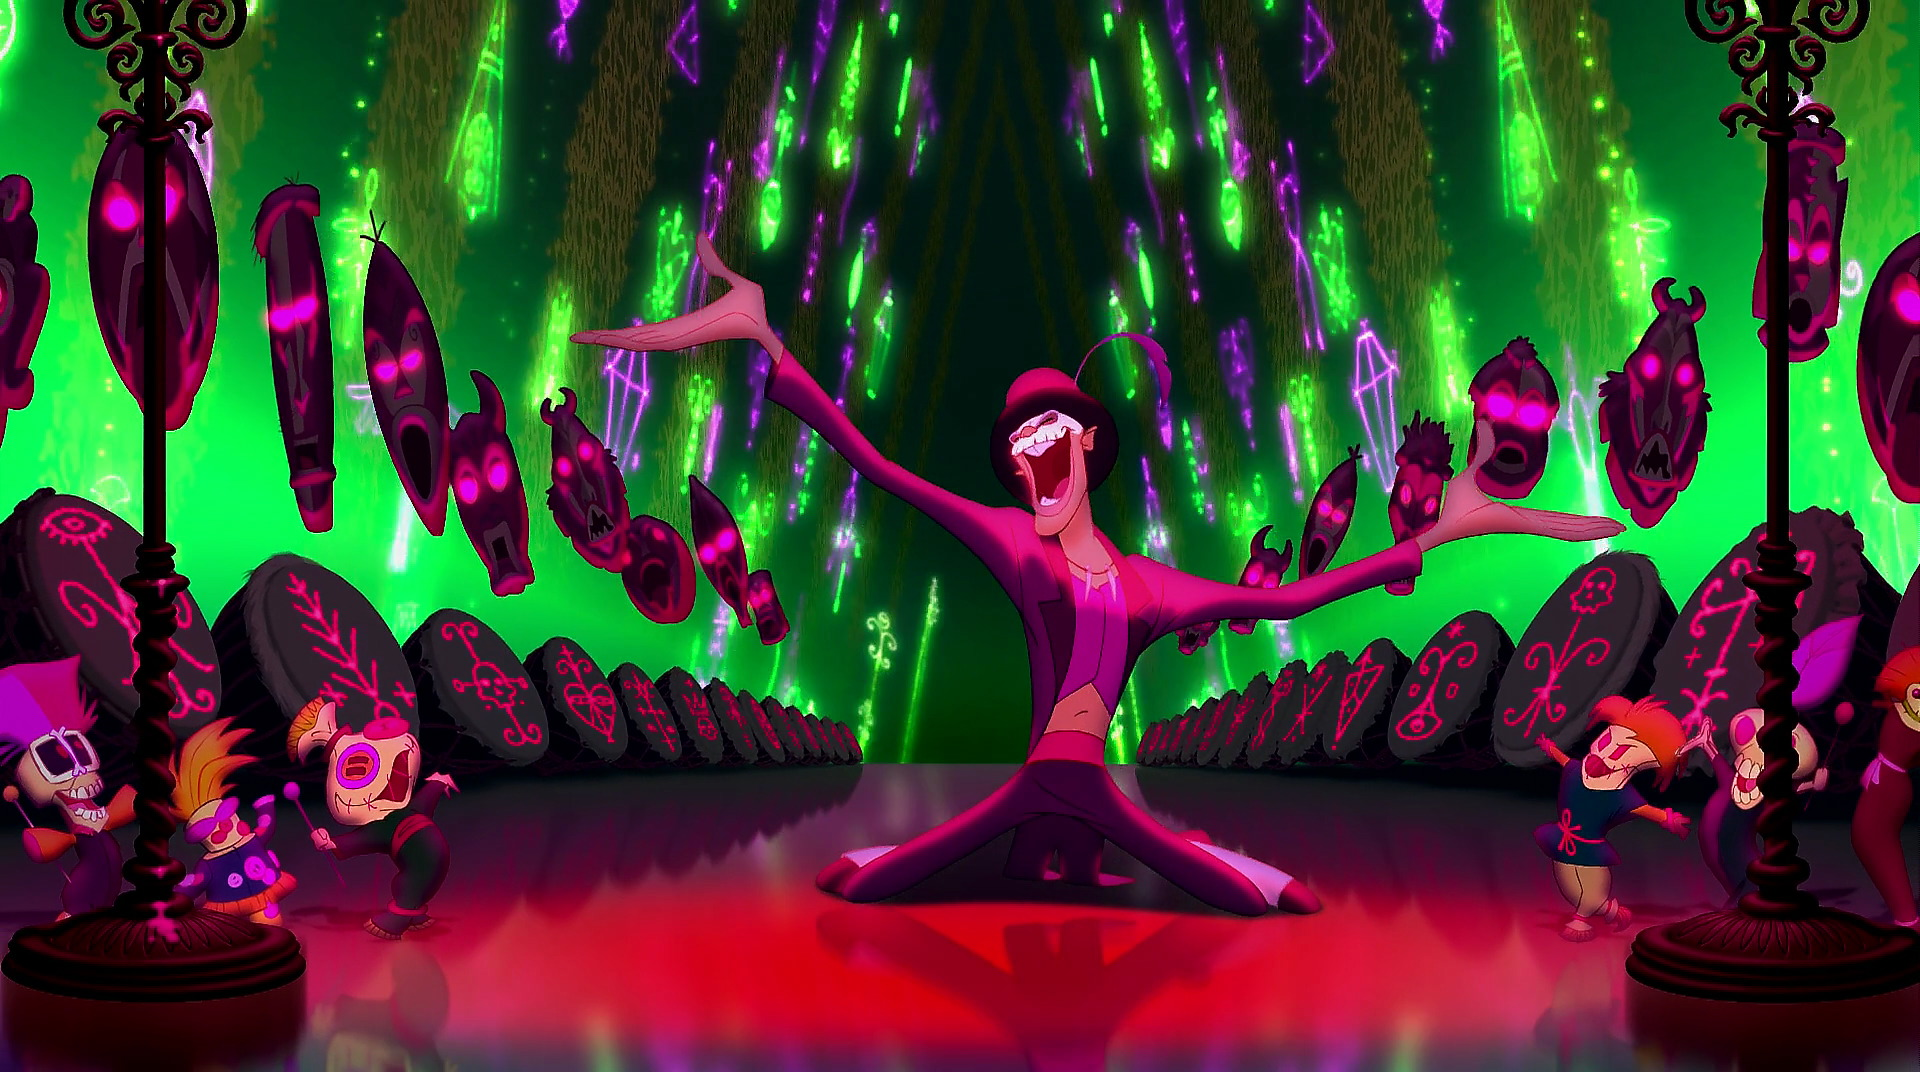 the princess and the frog rewriting jazz age history and culture